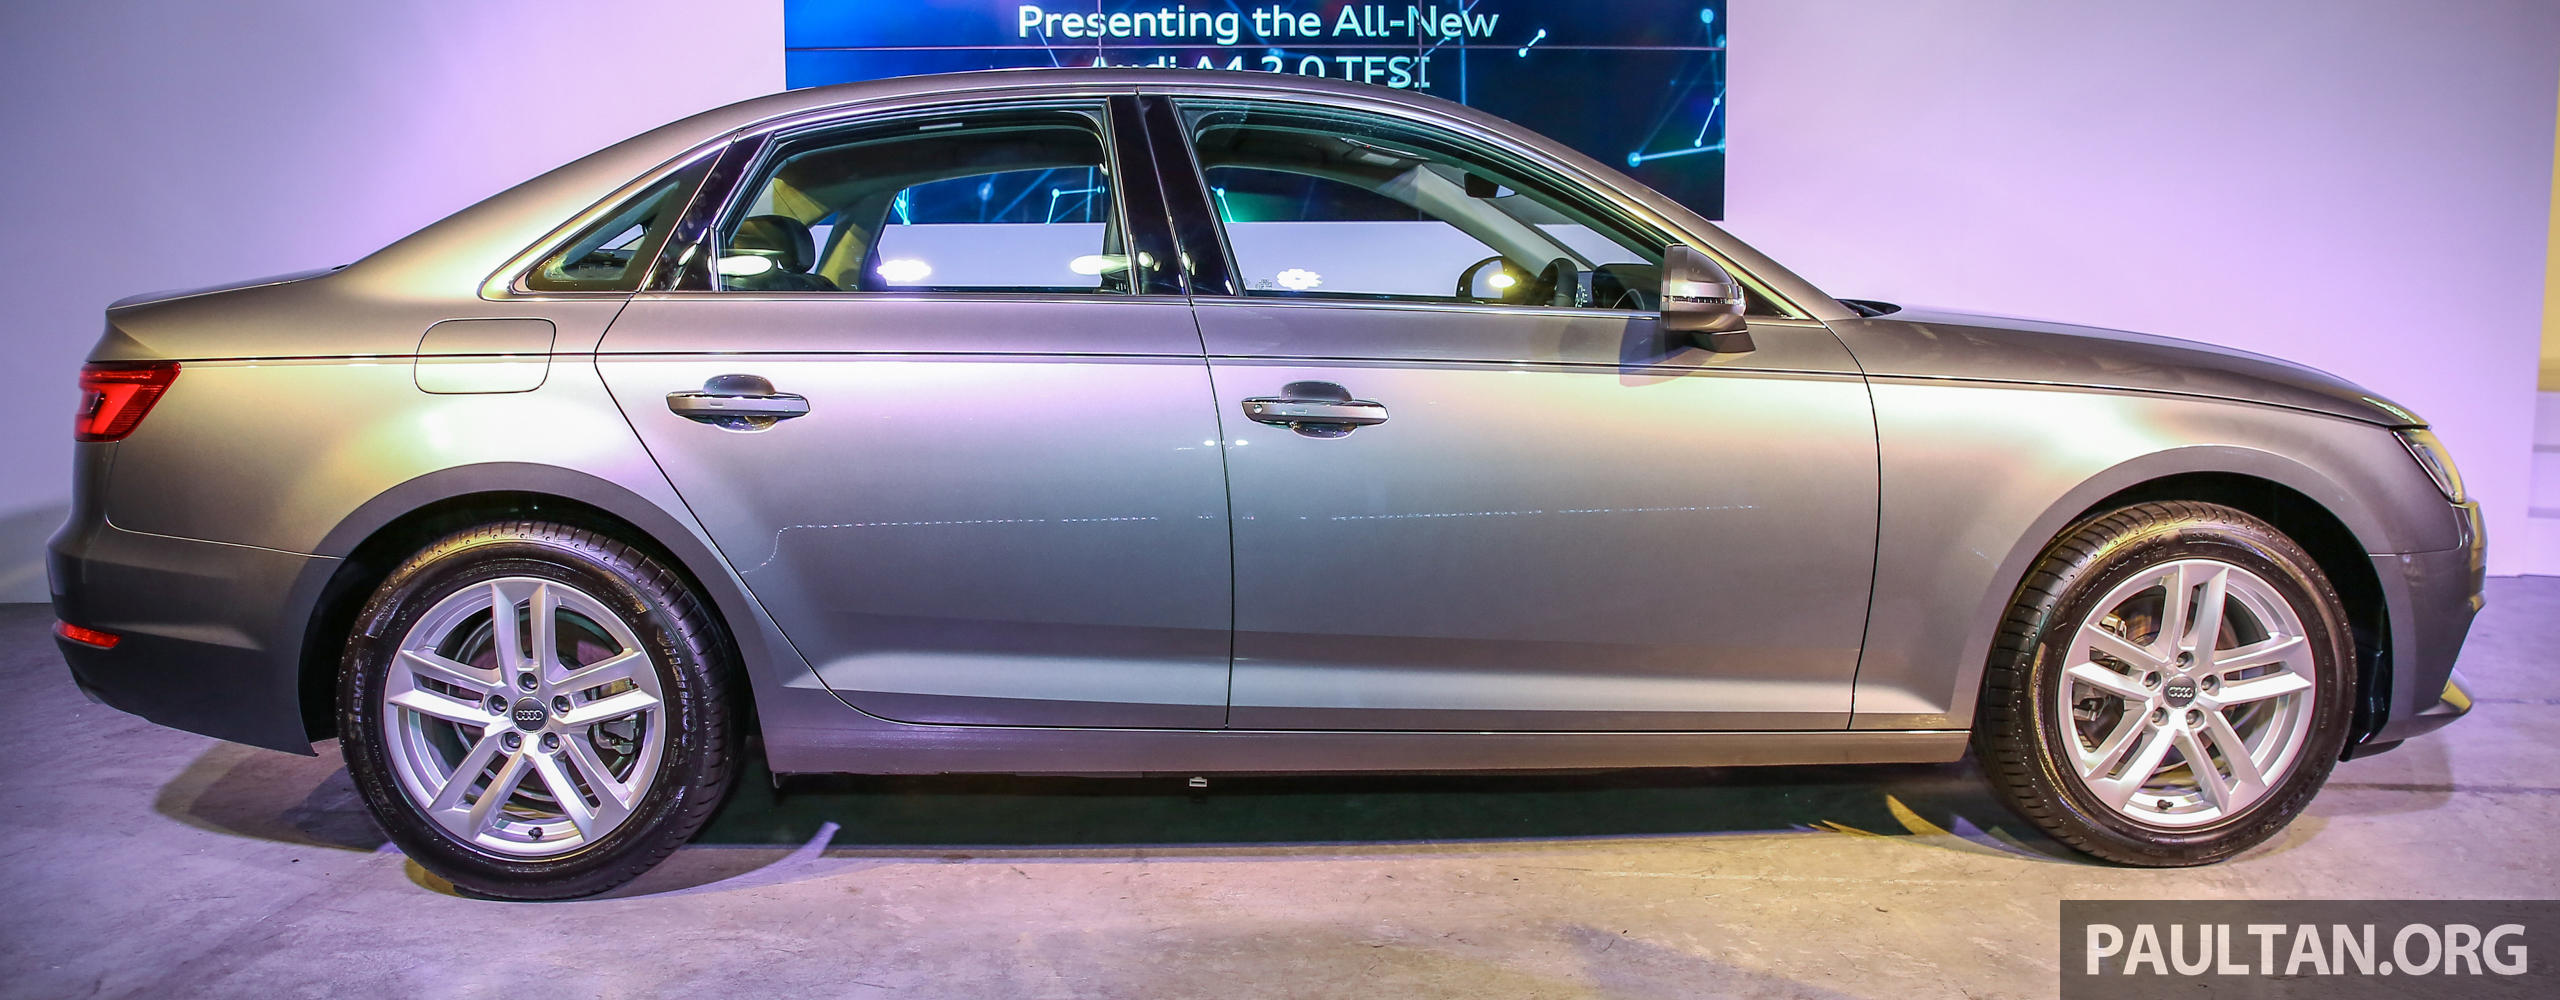 B9 Audi A4 Launched In Malaysia 2 0 Tfsi At Rm240k Paul